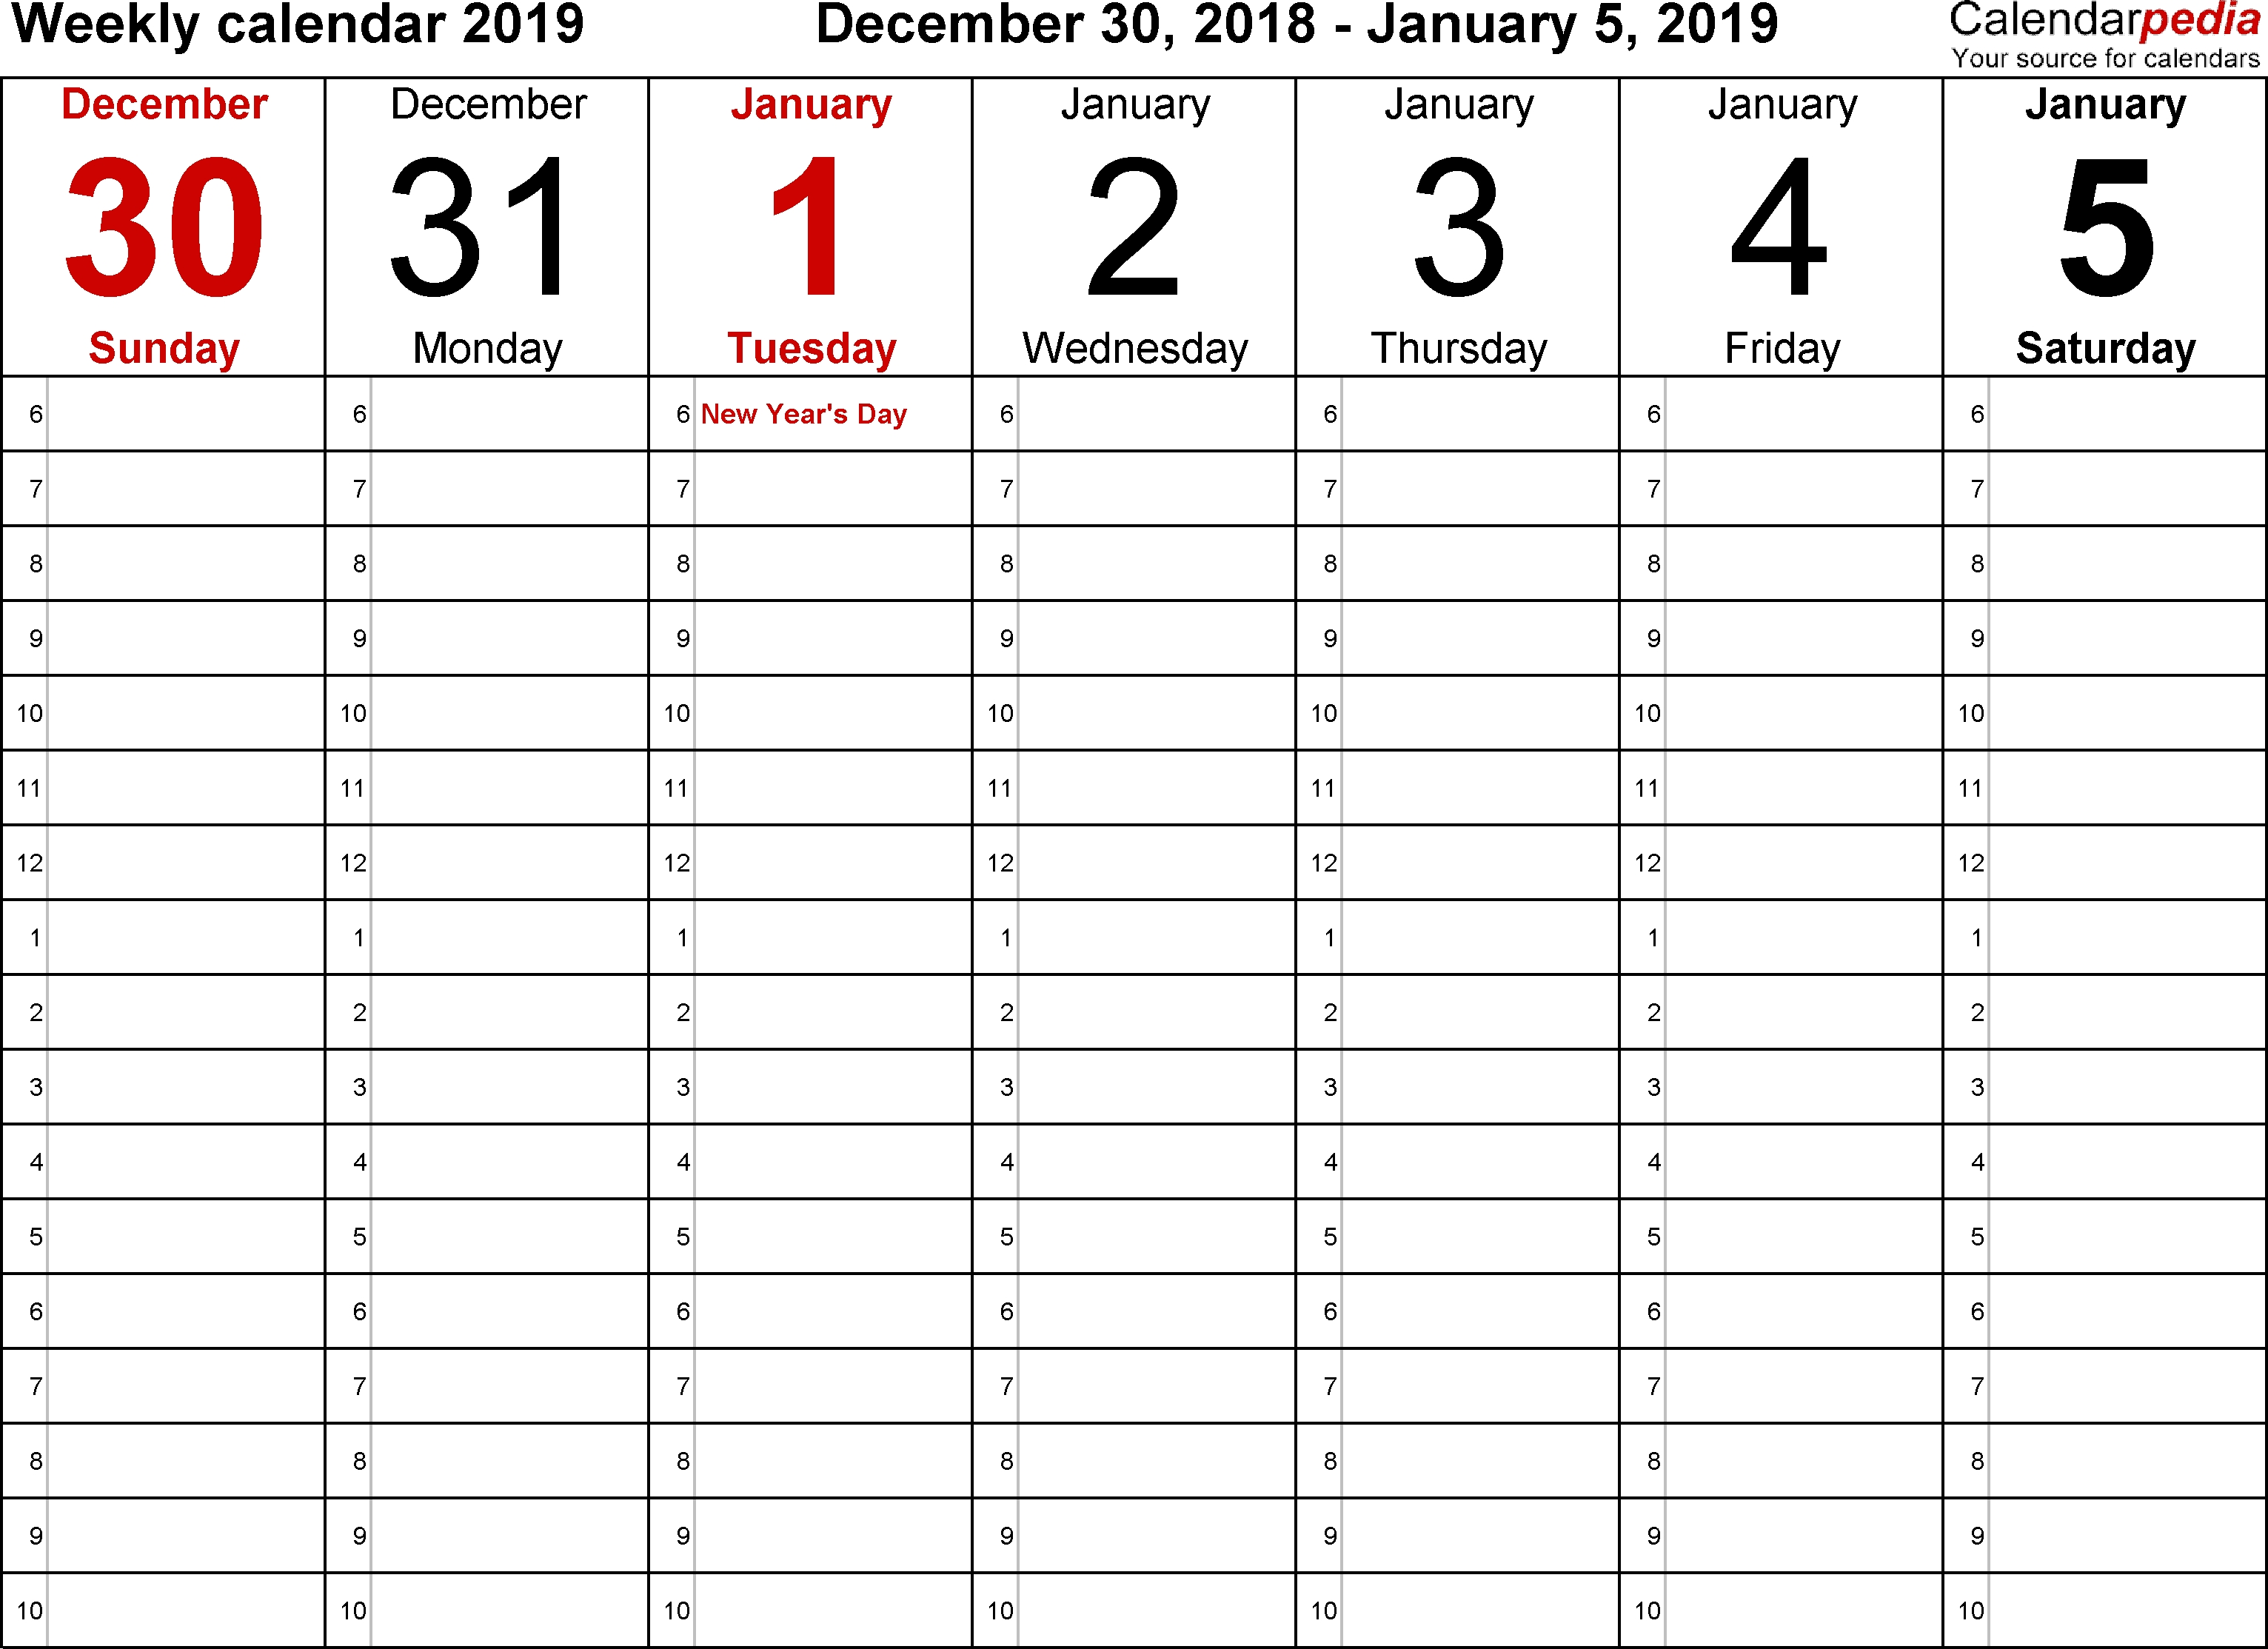 Weekly Calendar 2019 For Word - 12 Free Printable Templates regarding 8.5 X 11 Calander Filler For 2020